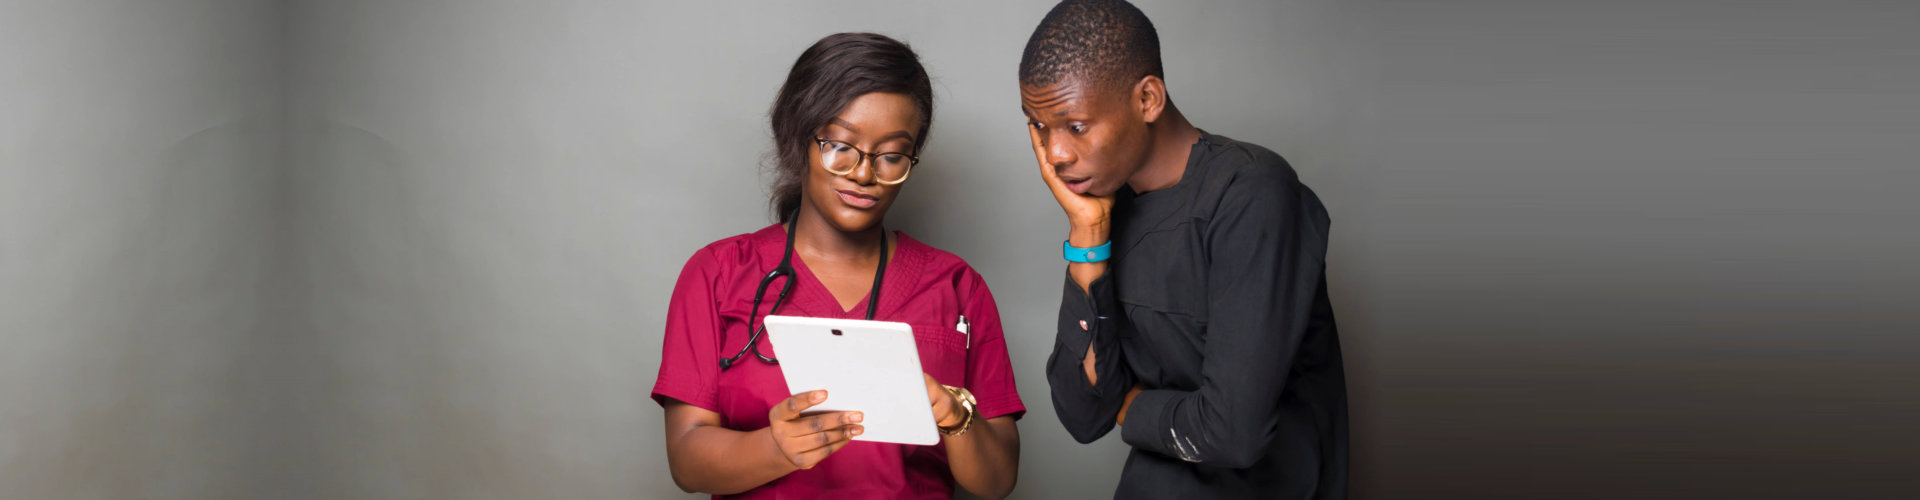 nurse showing her tablet to her patient